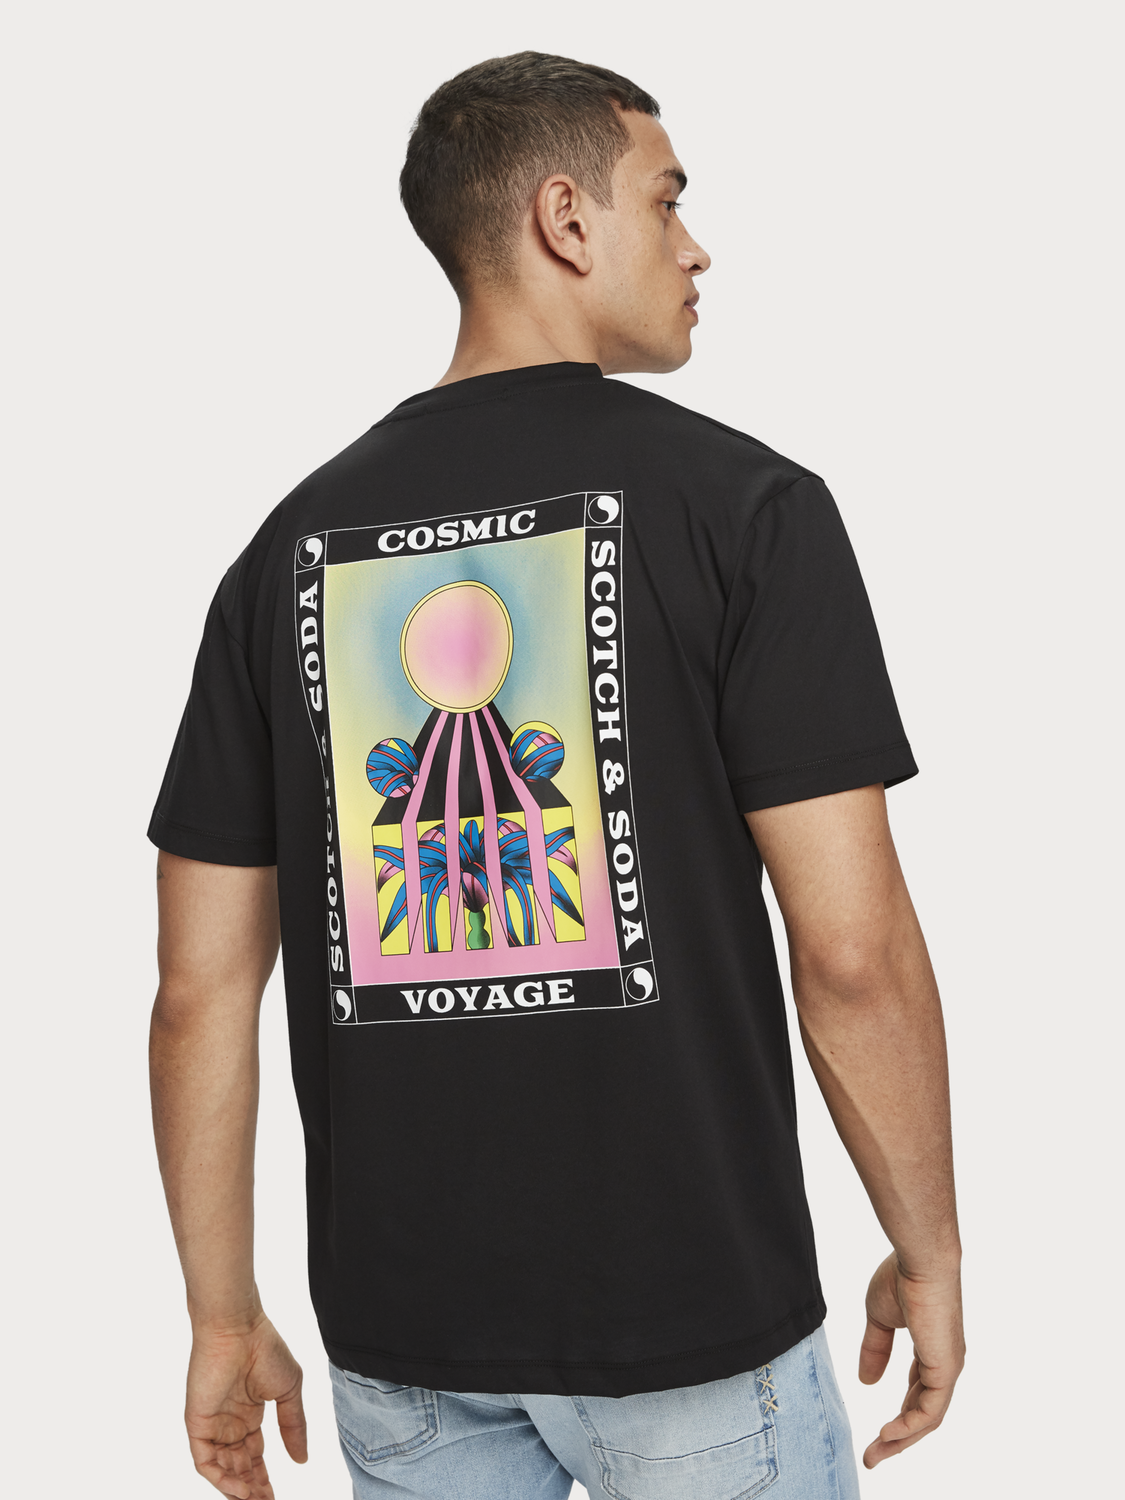 Heren T-shirt met artwork op de rug